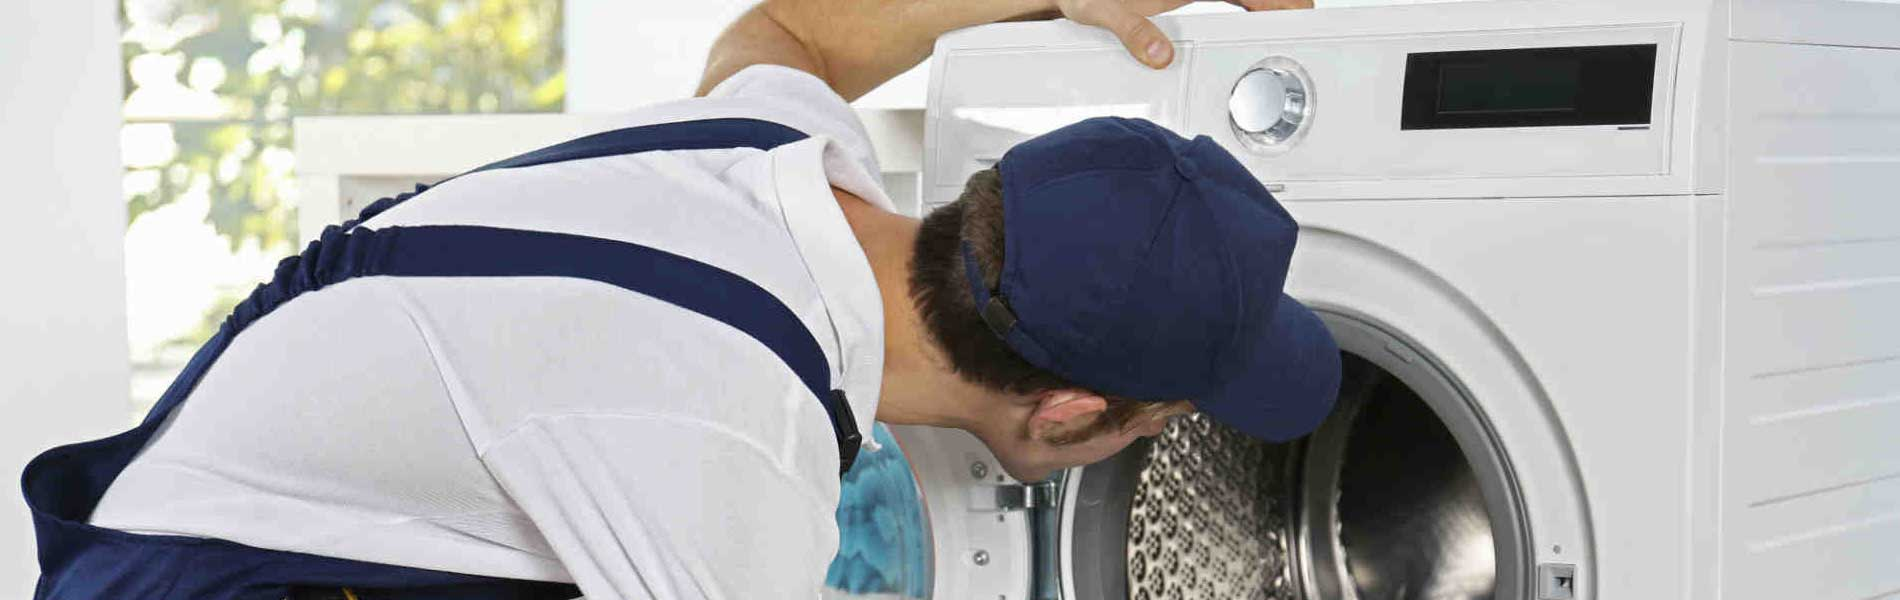 Onida Washing Machine Service in Sholinganallur